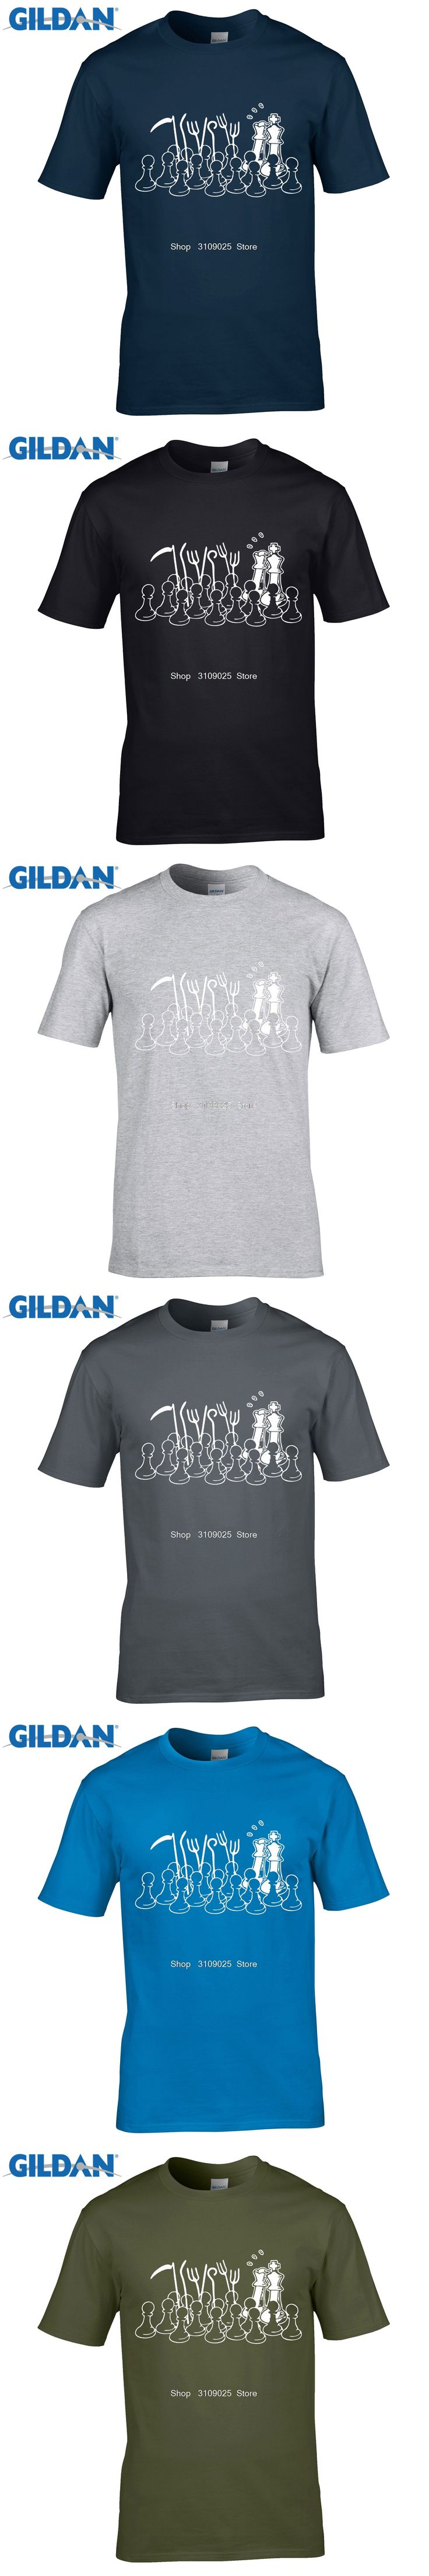 GILDAN men fashion brand t shirtOver Runer Government Anarchy Revolution Chess Pieces Anon Change Life Tee T-Shirt